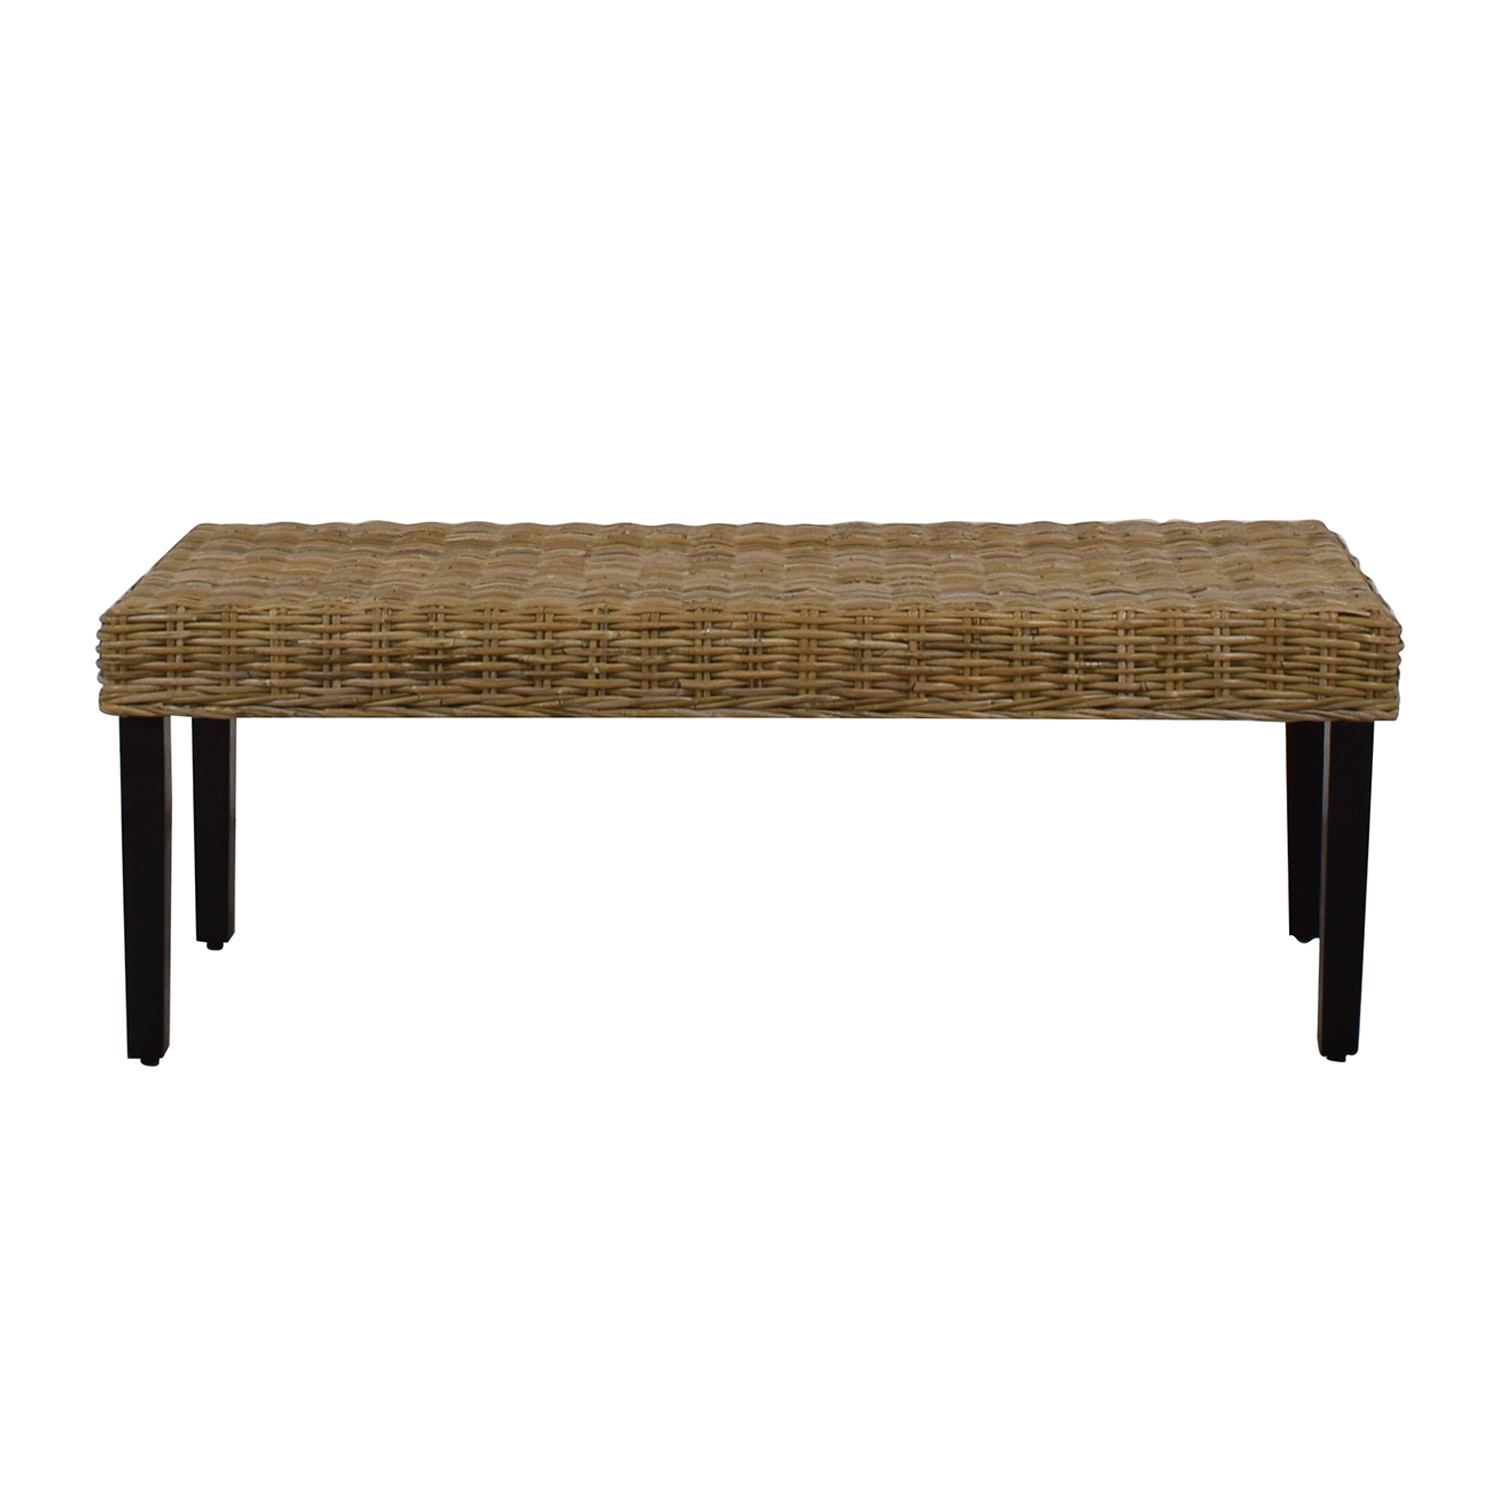 Admirable 74 Off Pier 1 Pier 1 Kubu Dining Bench Chairs Ocoug Best Dining Table And Chair Ideas Images Ocougorg